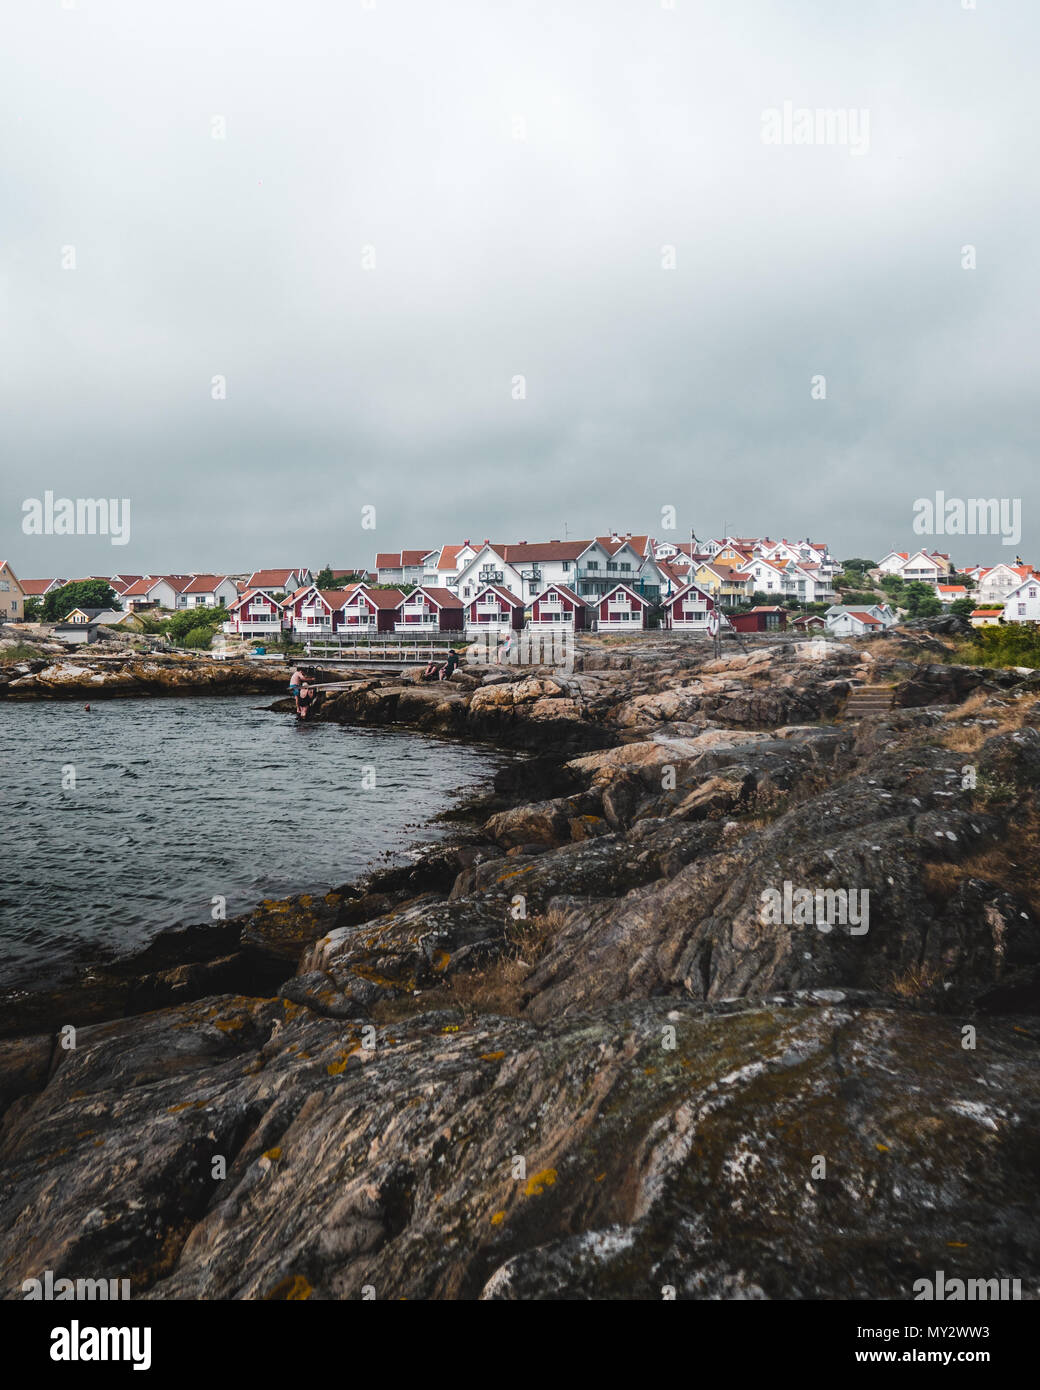 Overcast summer day in Gullholmen, Orust on the Swedish west coast. Hot summer day in Sweden. Stock Photo